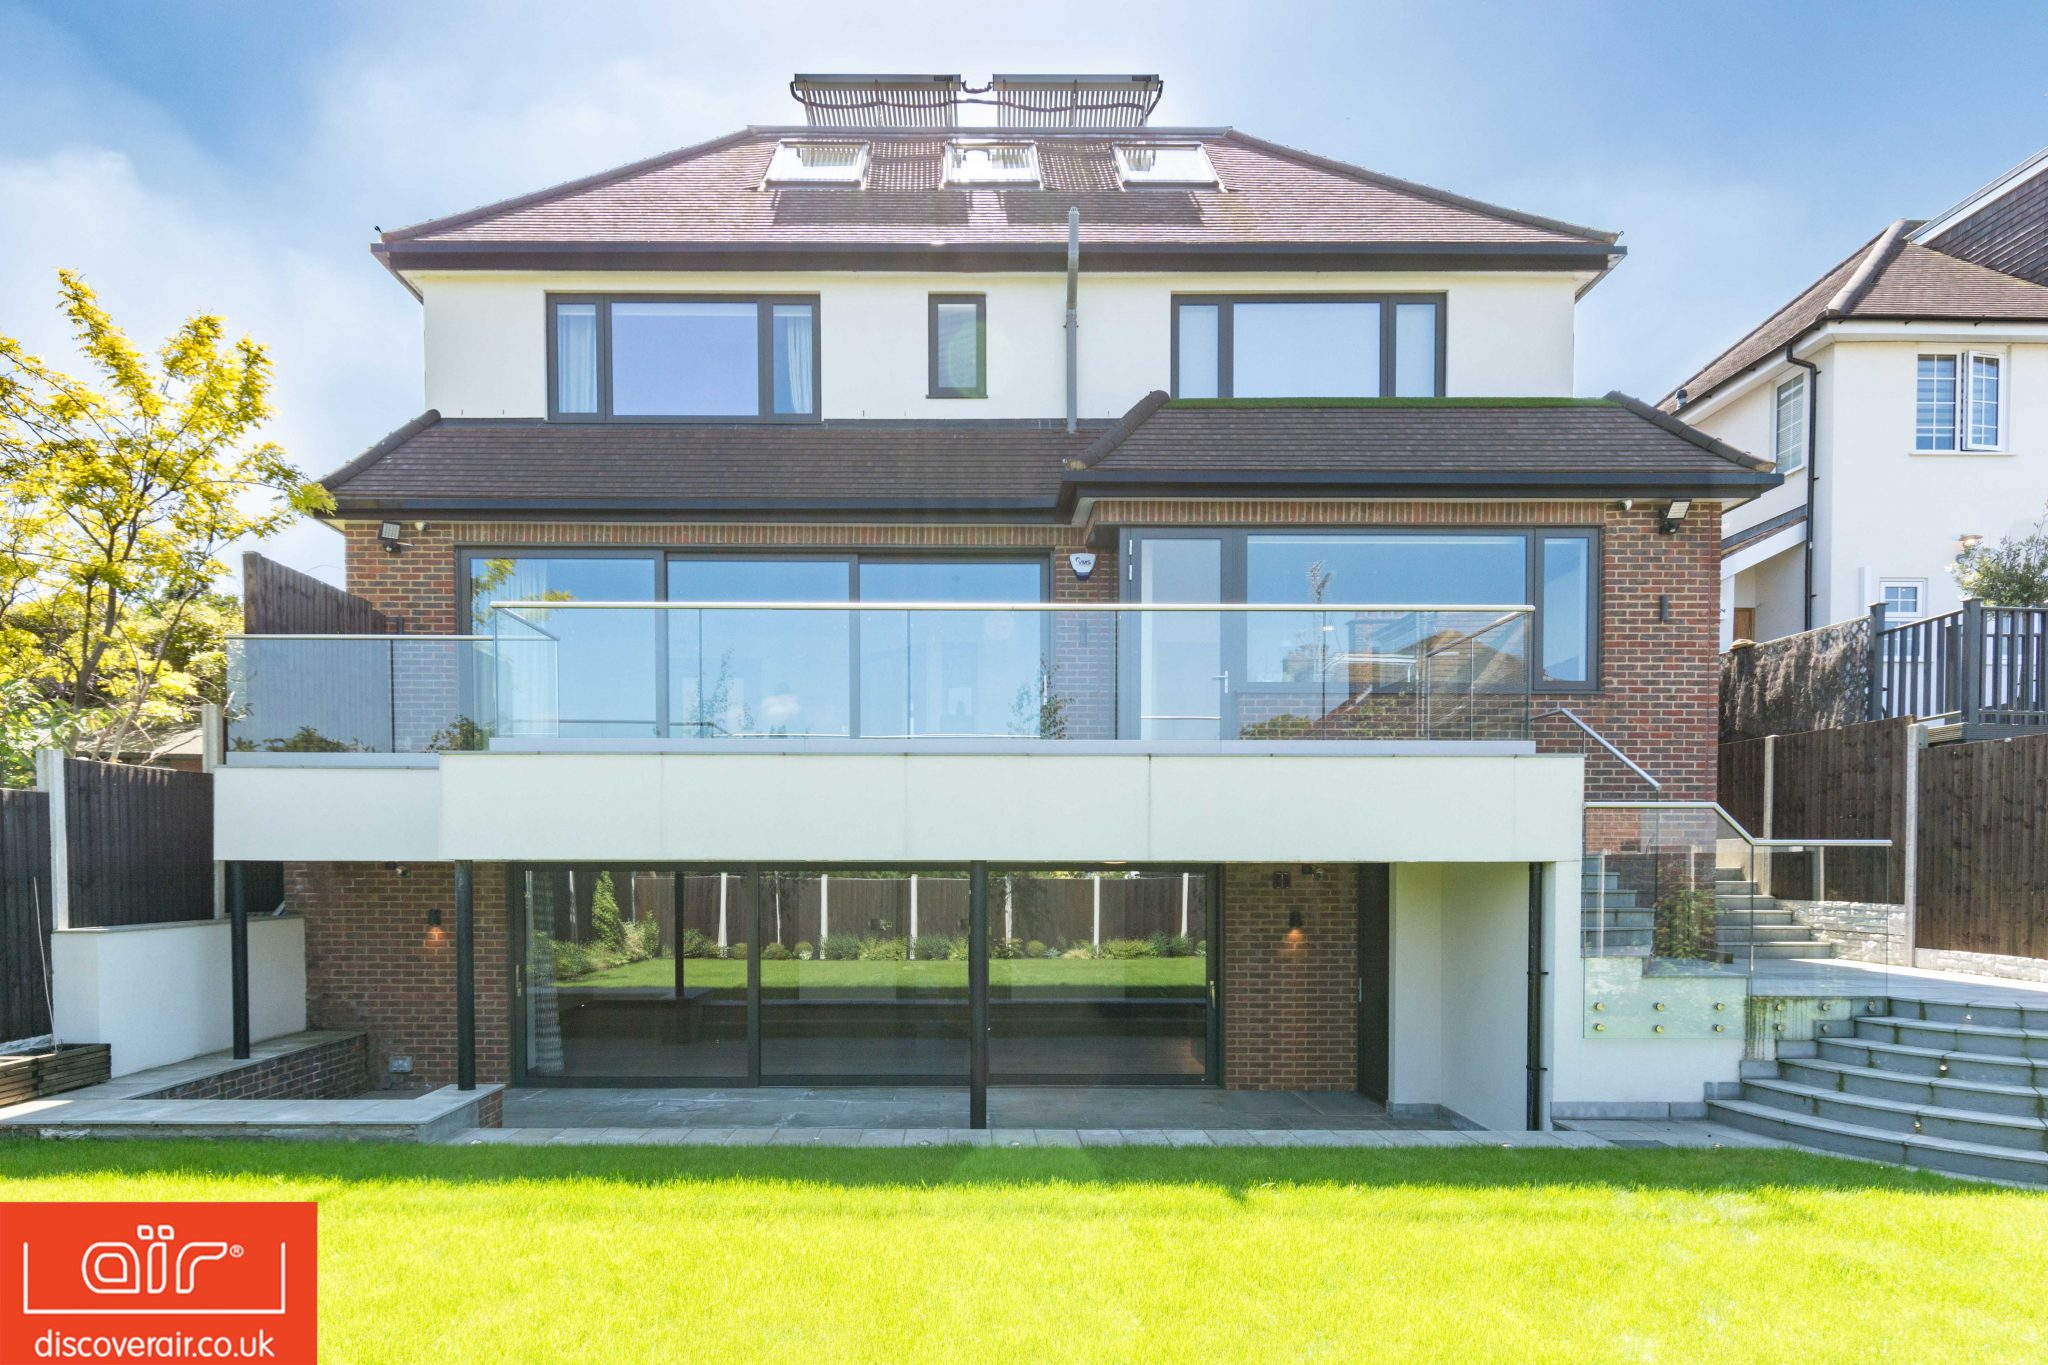 Discover air Accredited Retailers installer air lift & slide doors